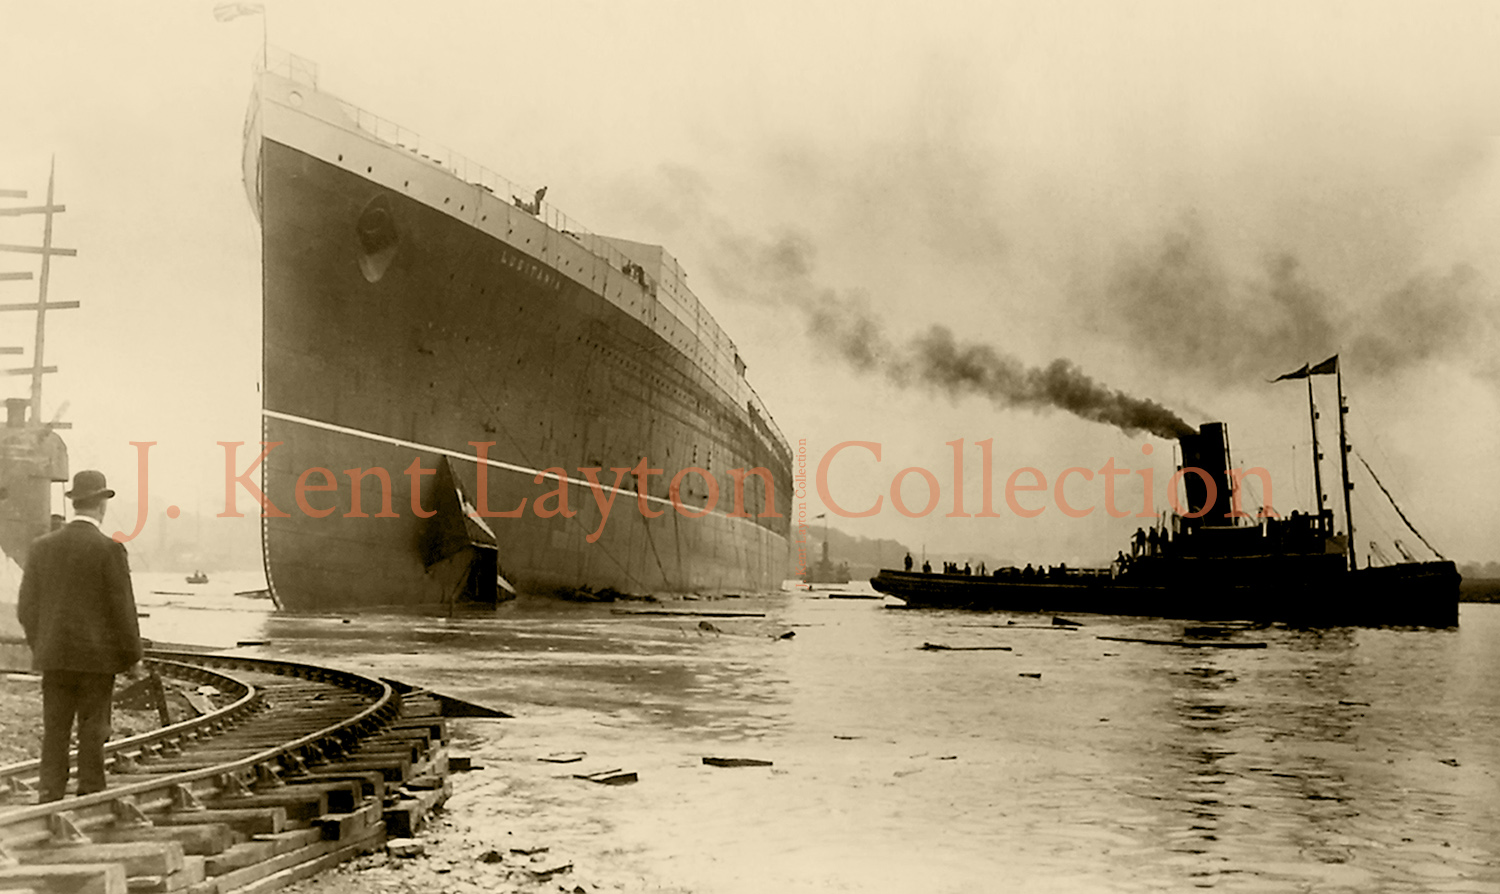 Shortly after the launch, tugs take the Lusitania in tow, shepherding her toward the fitting out basin. (J. Kent Layton Collection)